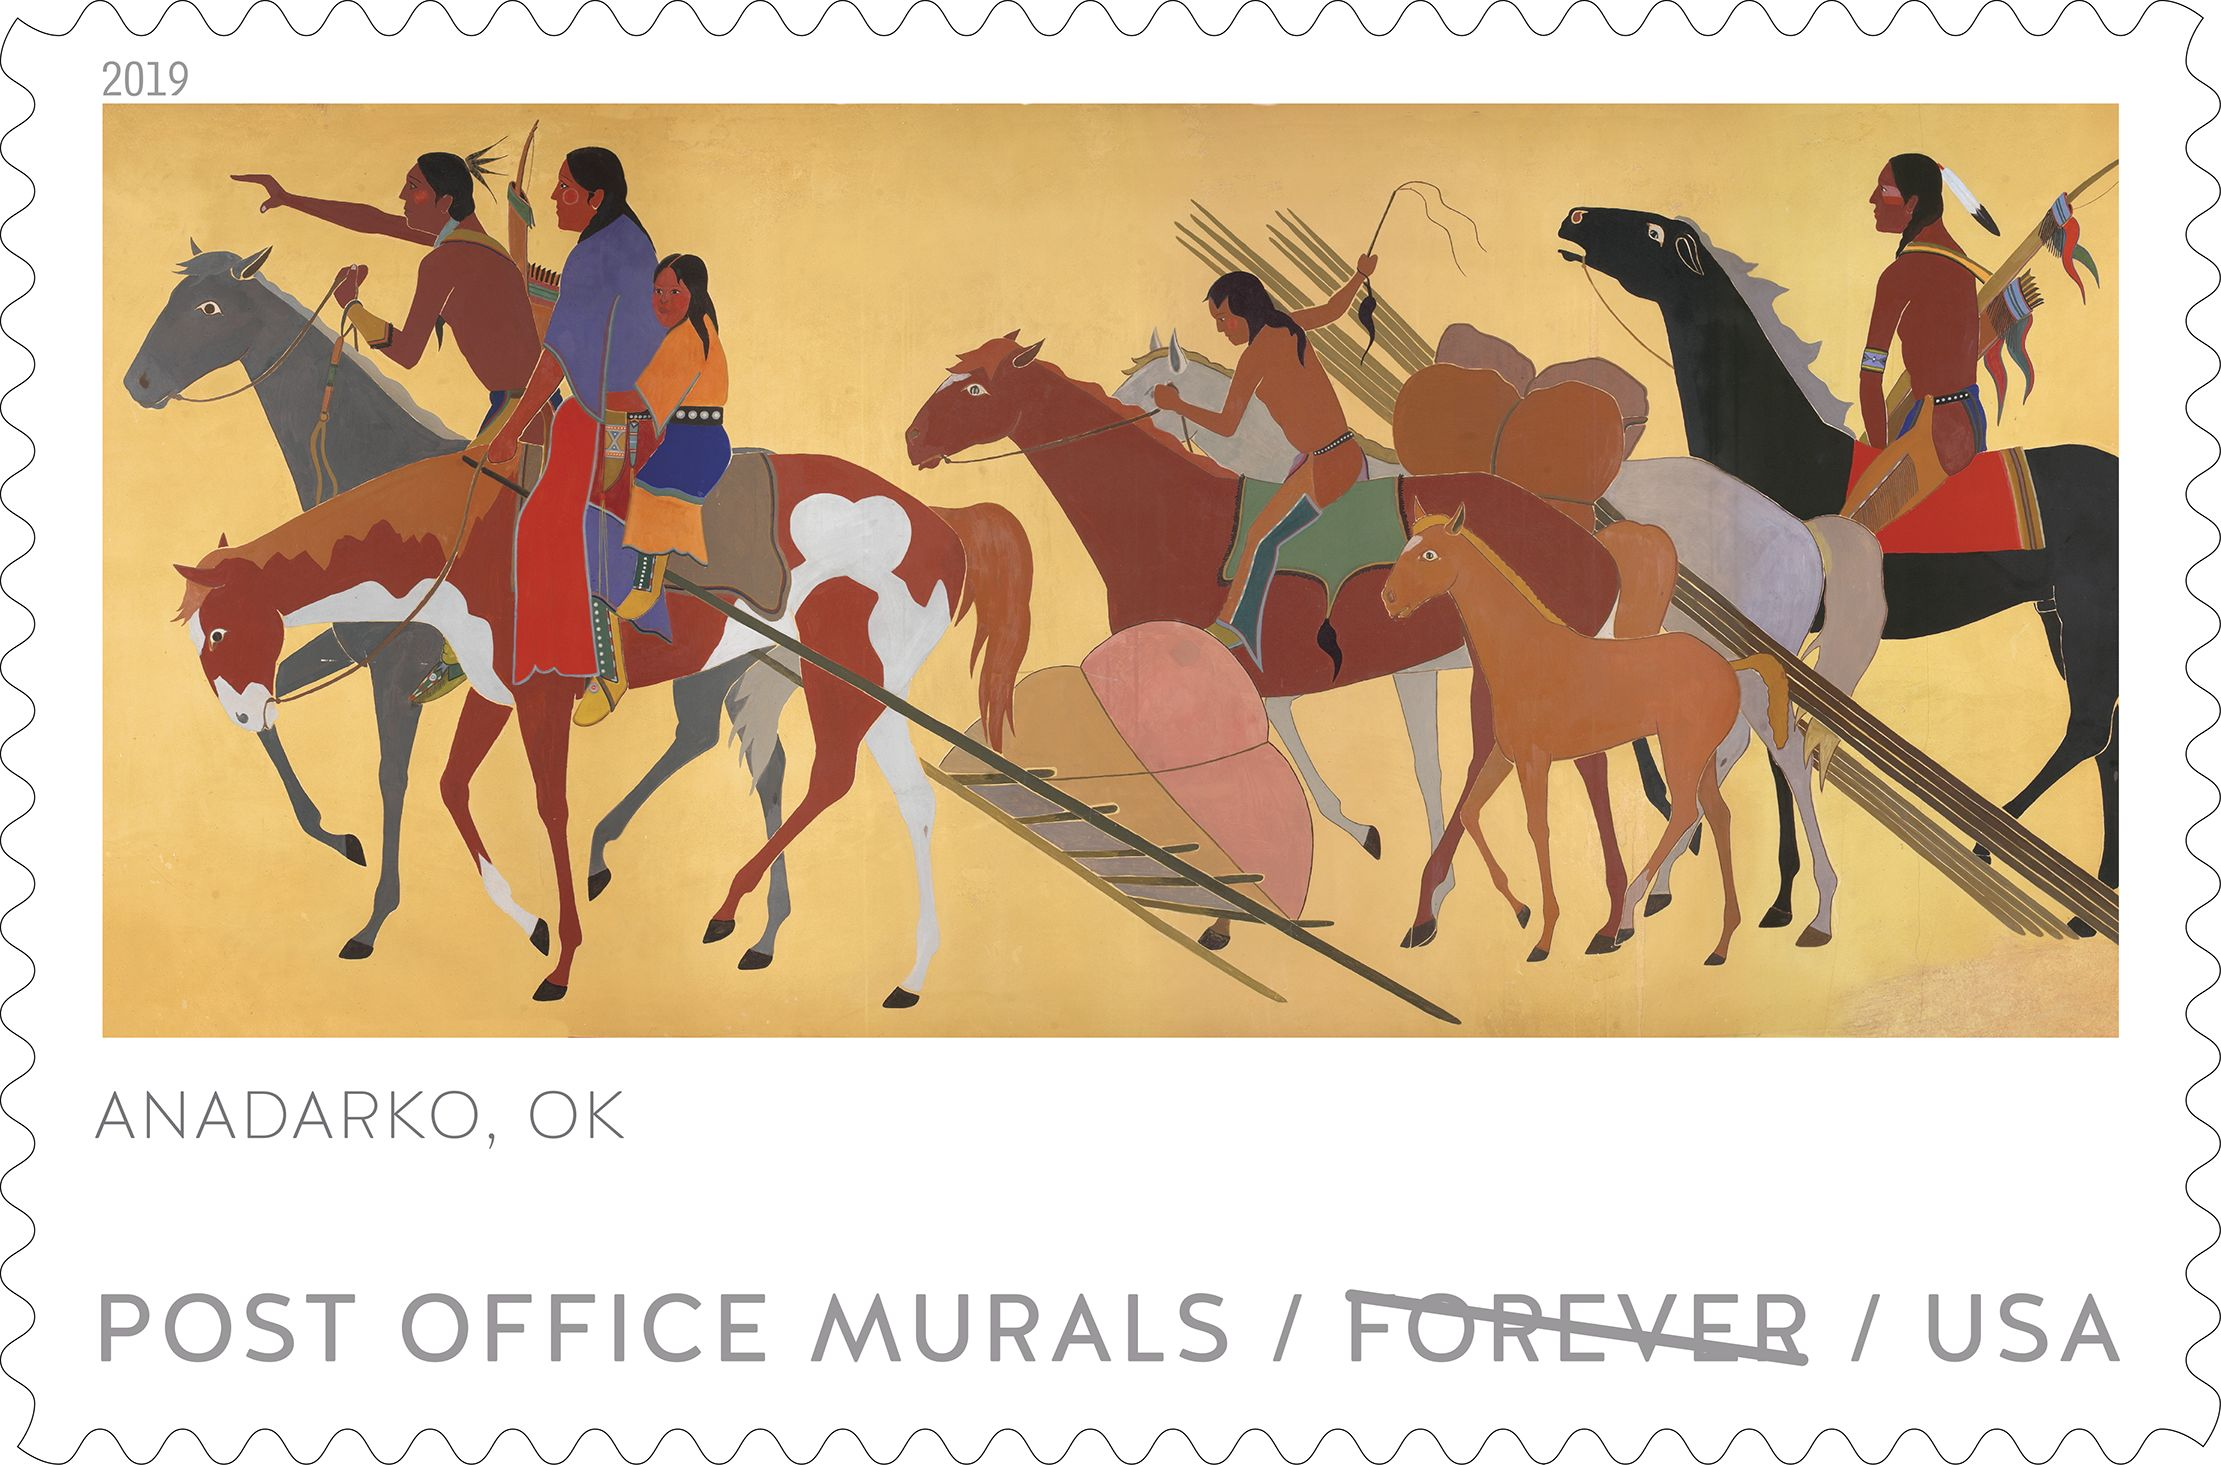 A new set of five stamps depicting Post Office murals will feature one from Anadarko, Oklahoma. The stamps will be unveiled officially in Anadarko on Tuesday, April 30, 2019. (Courtesy of the USPS.)